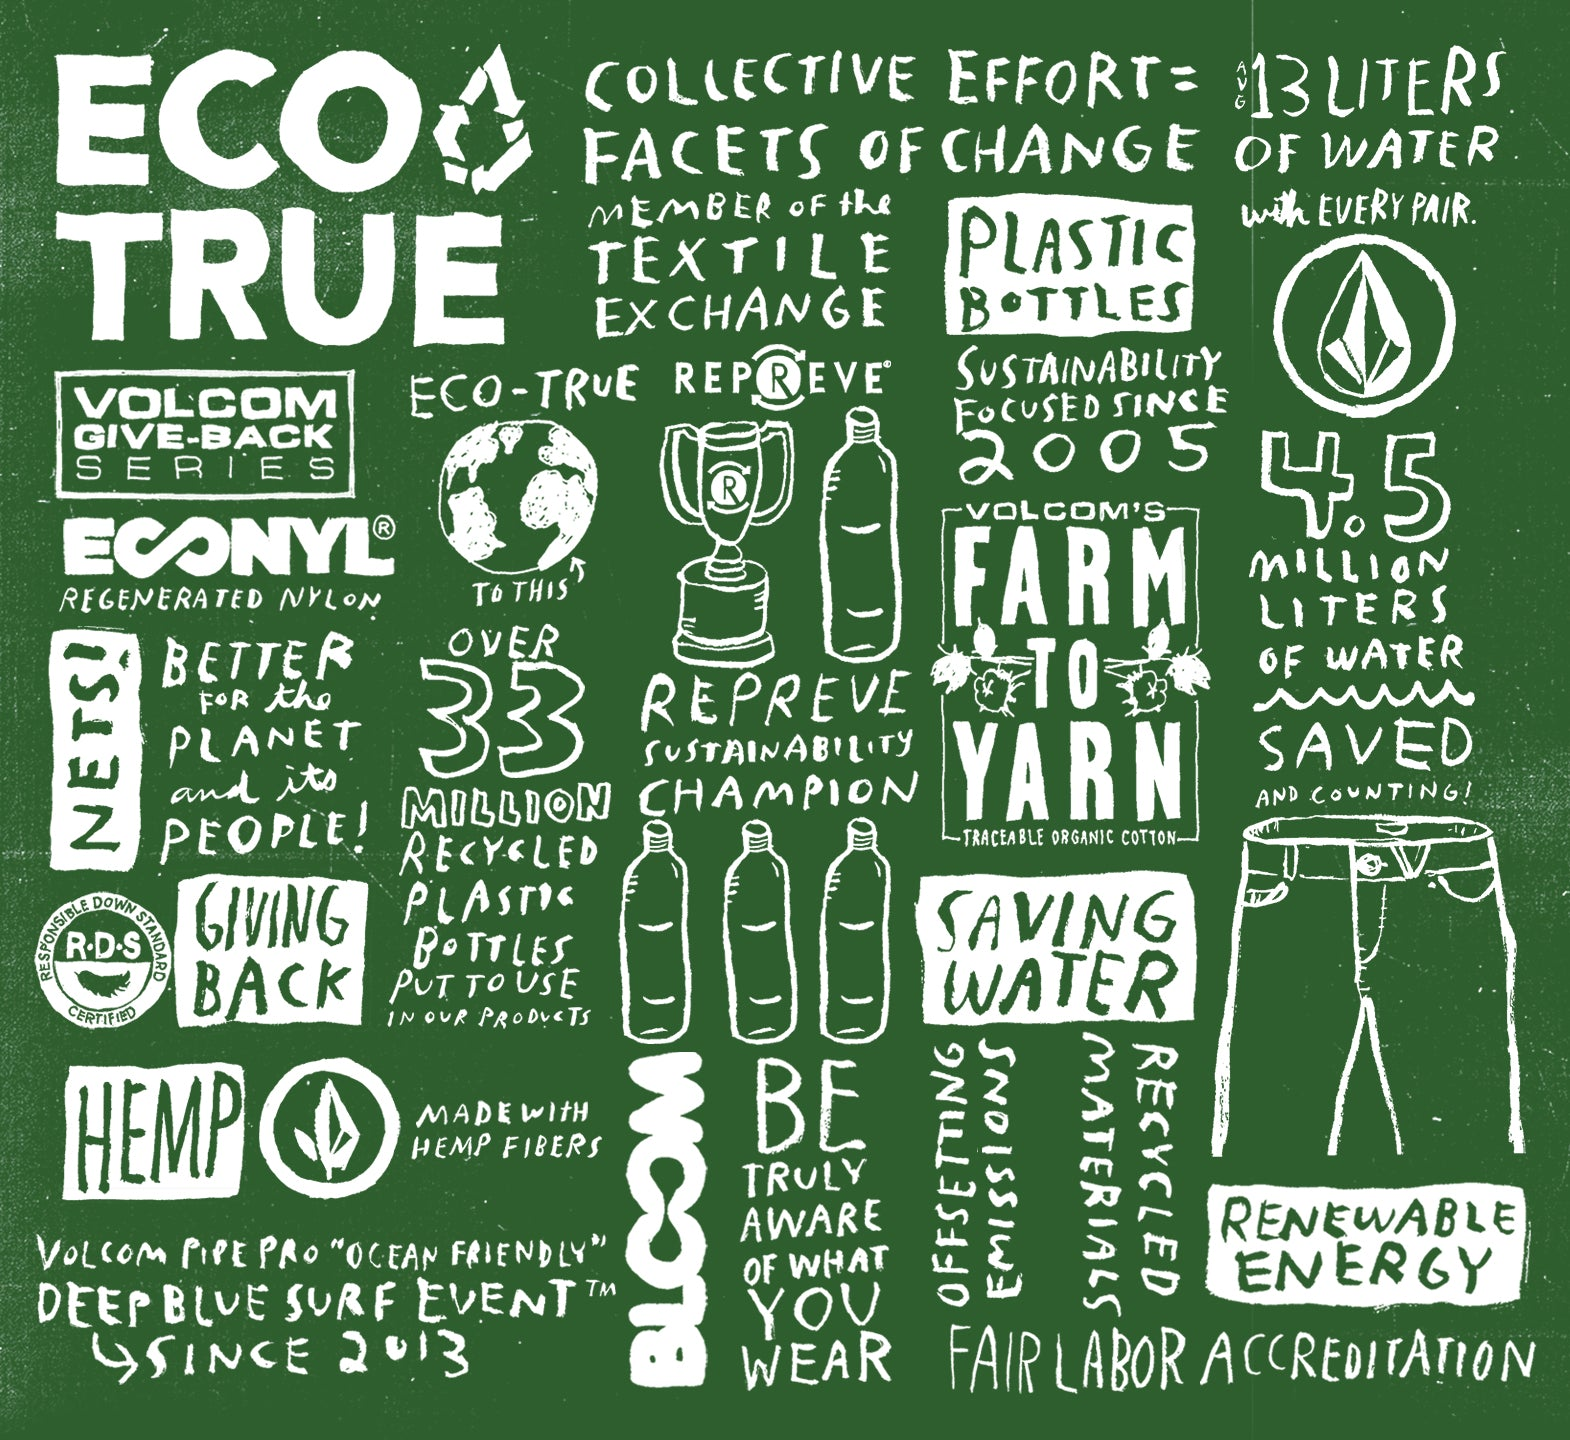 Learn More on how Volcom is staying Eco-True